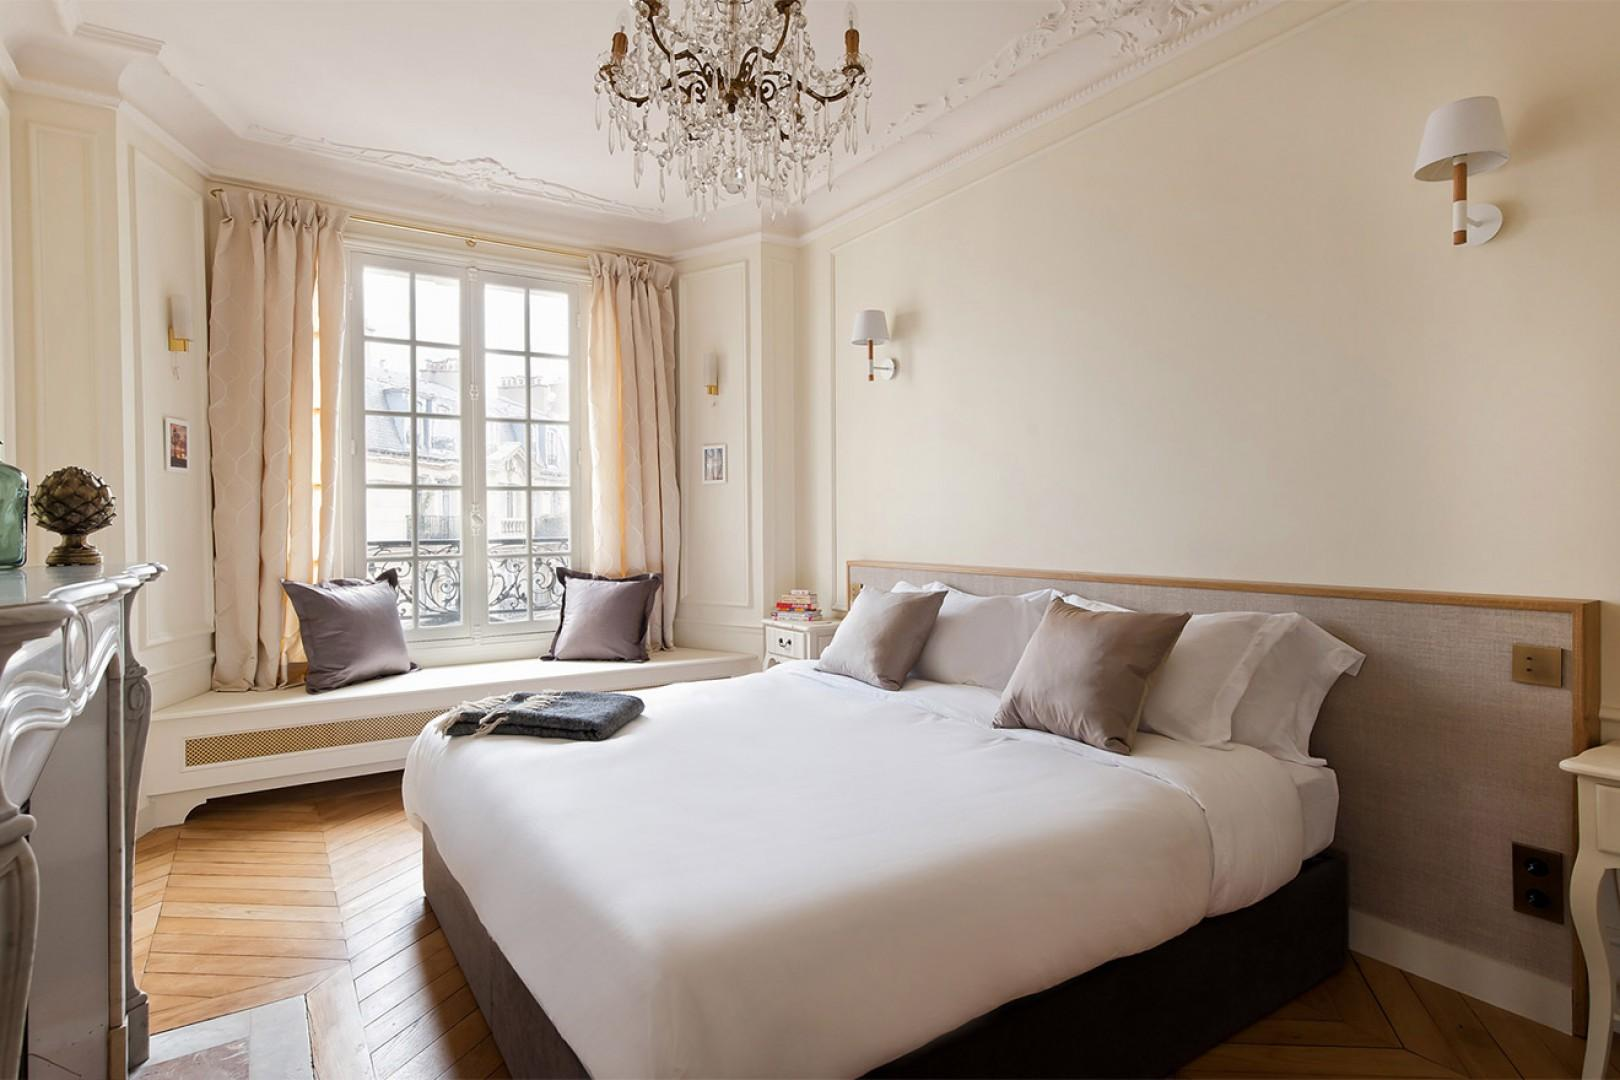 Bedroom 2 is beautifully airy.